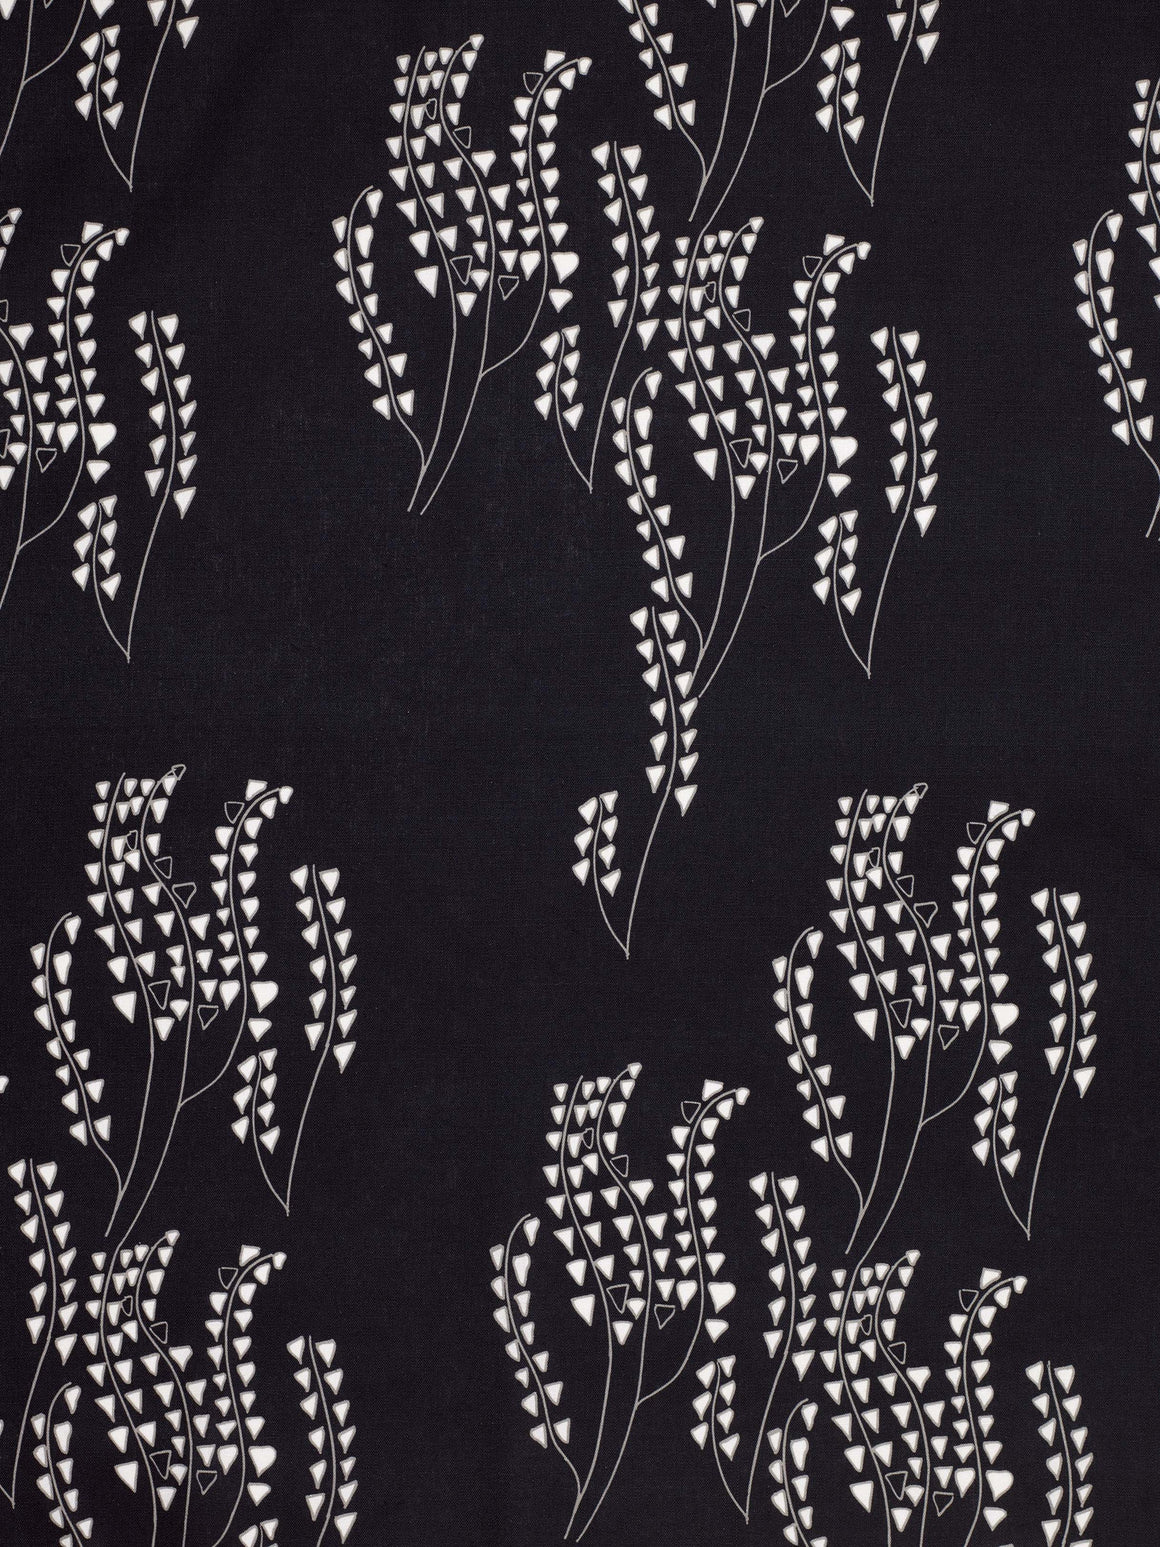 Yuma Fabric - Black